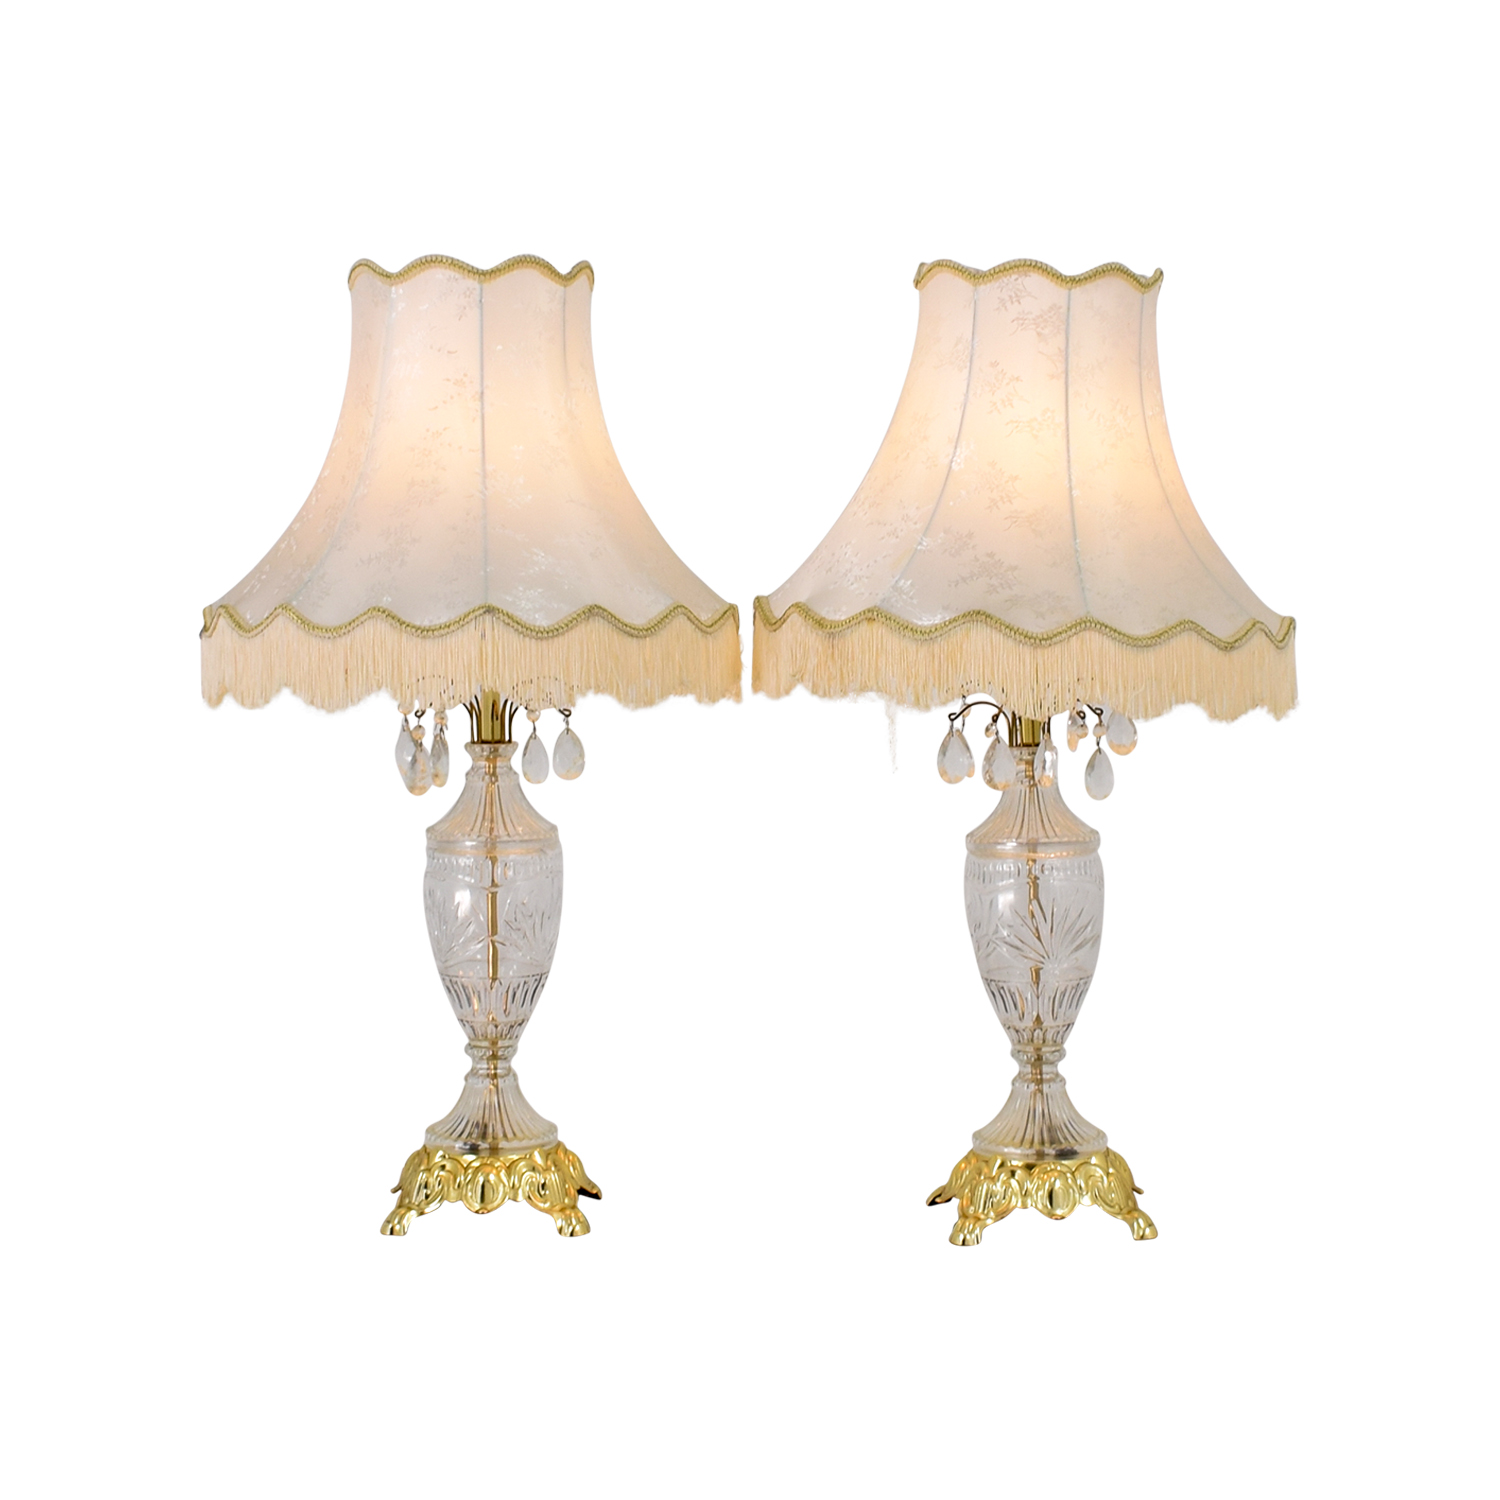 Antique Glass Lamps dimensions